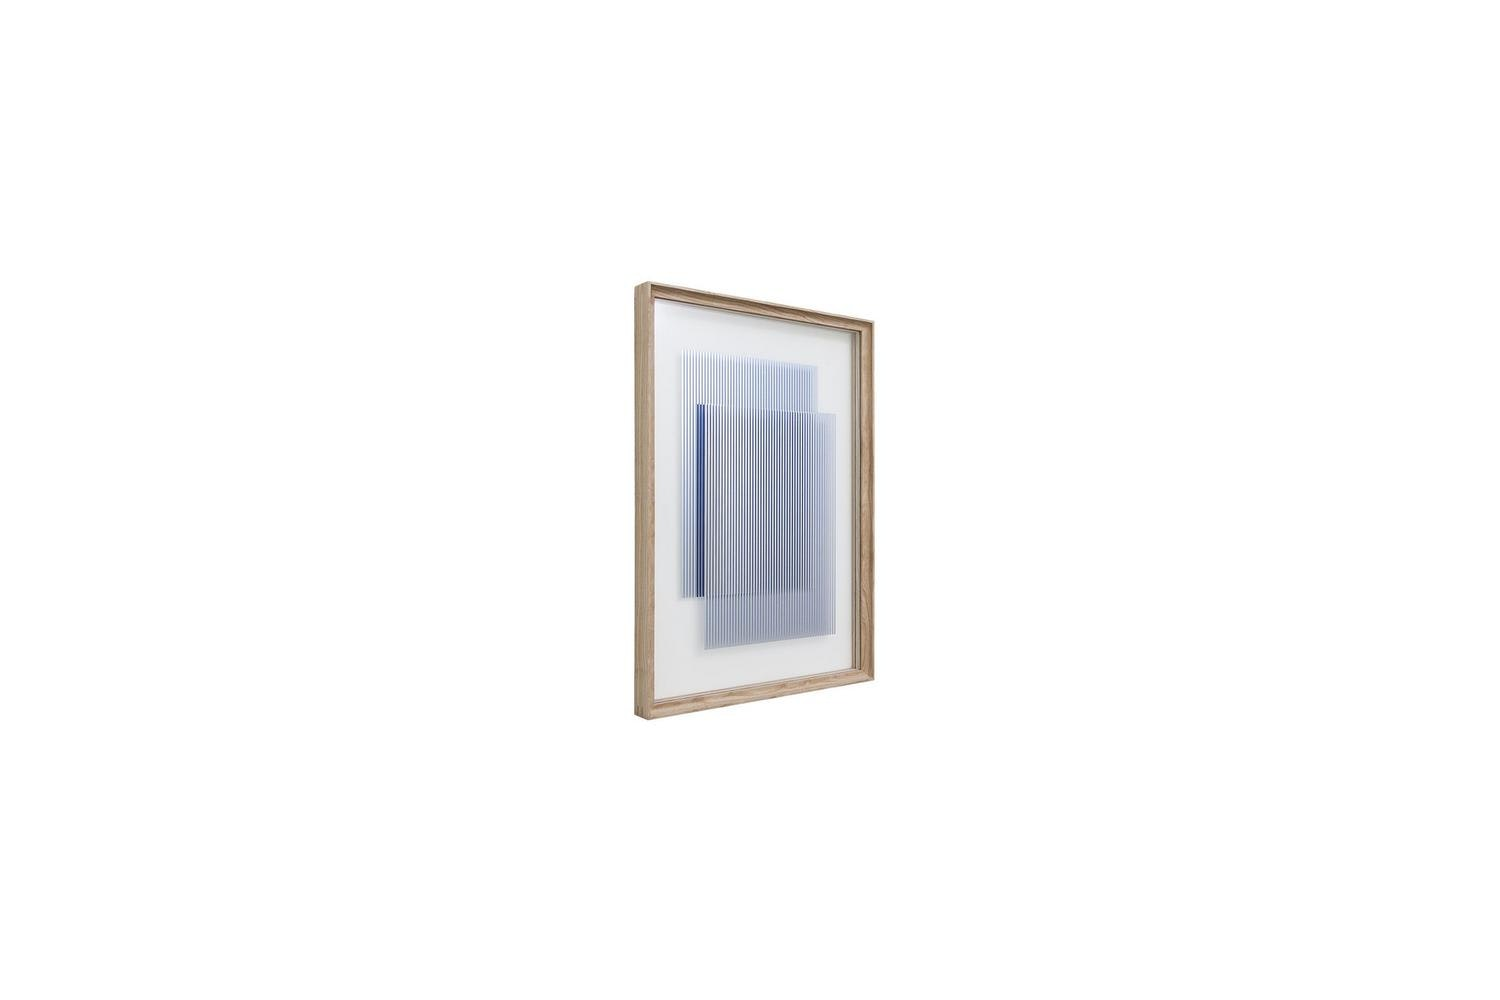 083 Deadline Mirror by Ron Gilad for Cassina